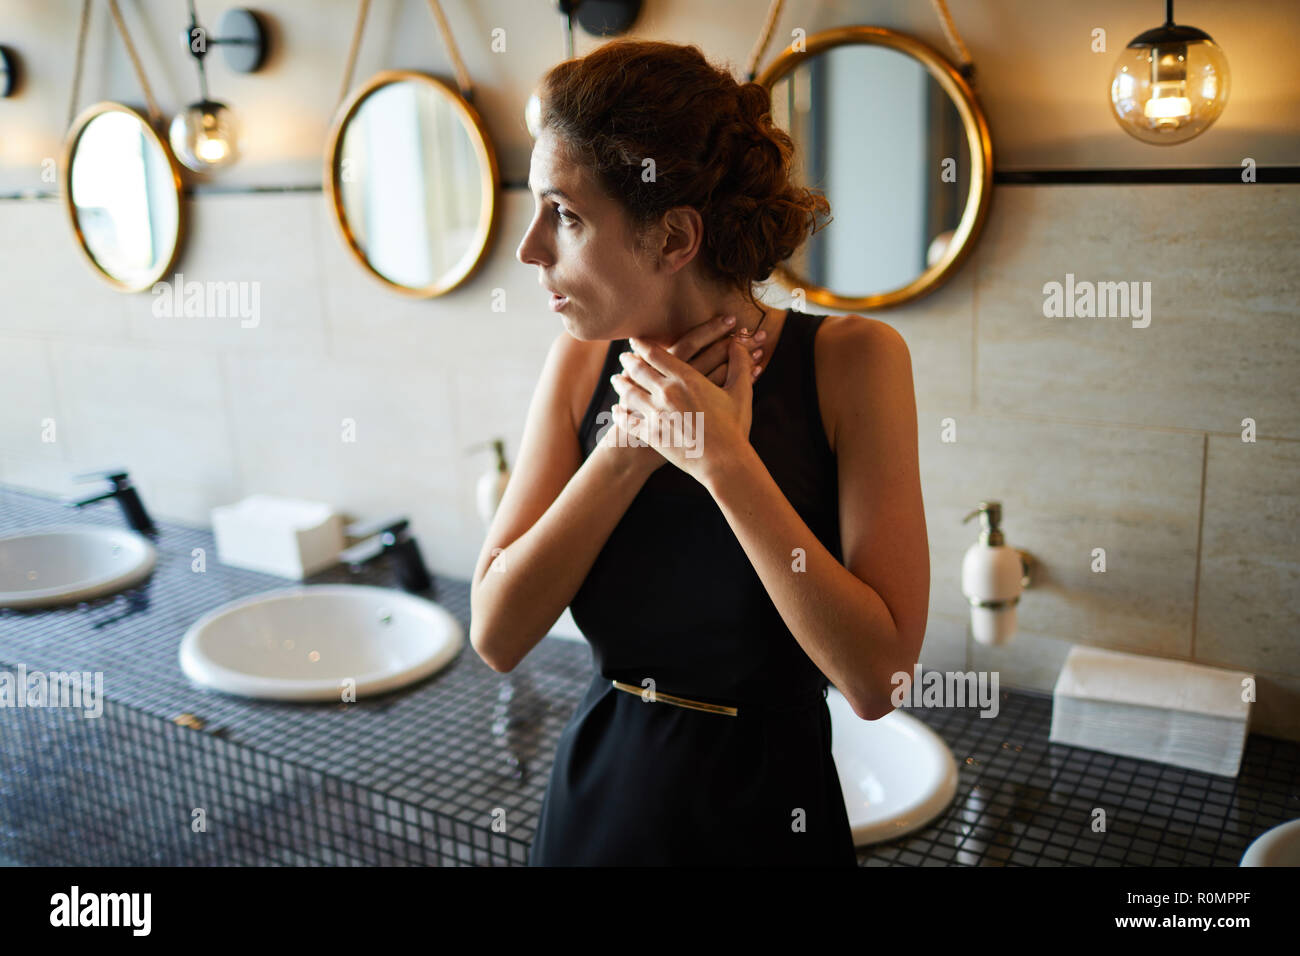 Young brunette woman in elegant black dress touching her throat while standing in toilet - Stock Image